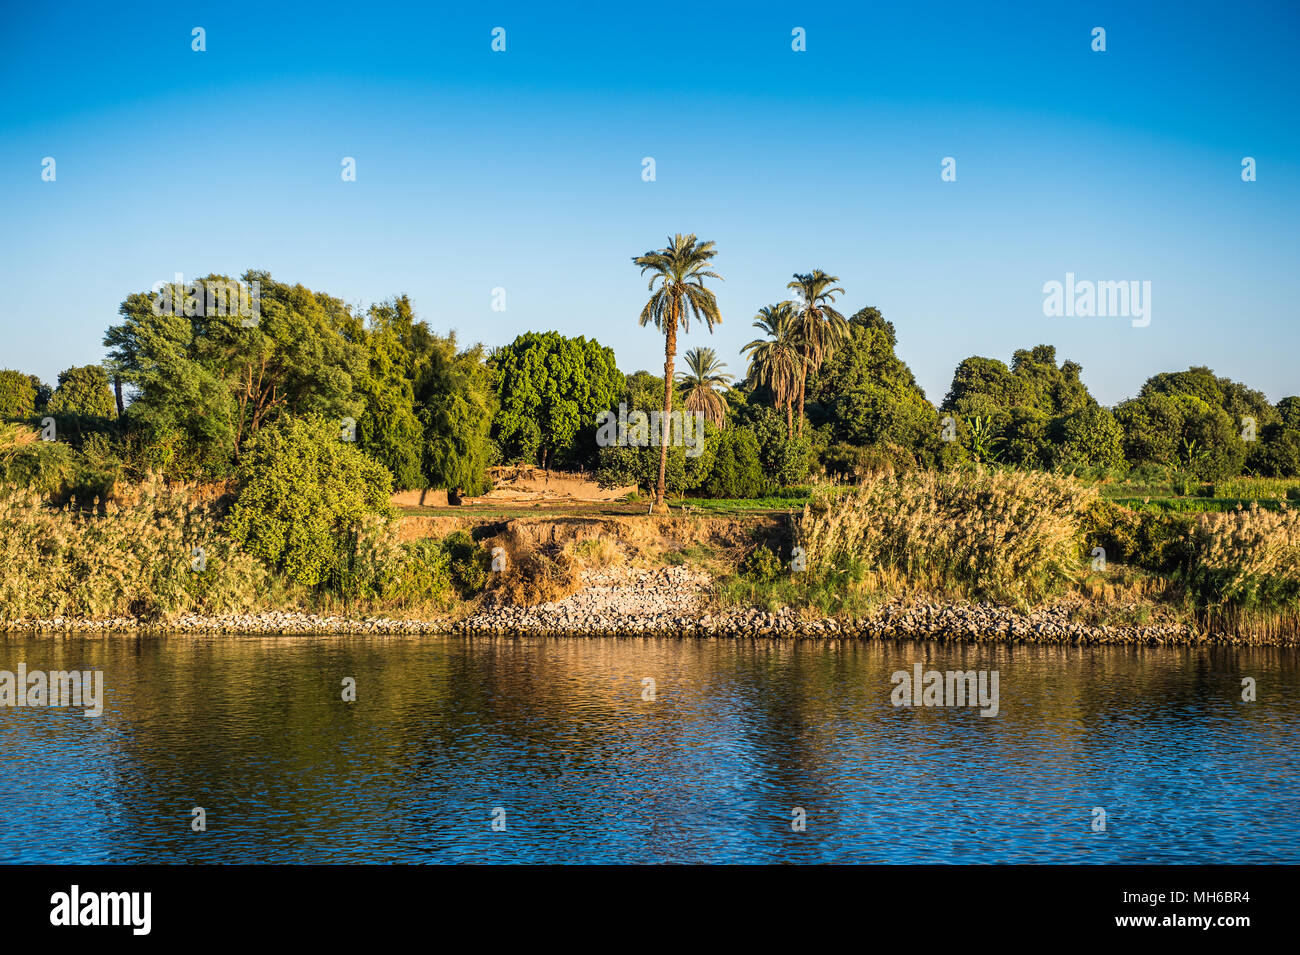 Coast and nature on the coast of the Nile rive in Egypt Stock Photo